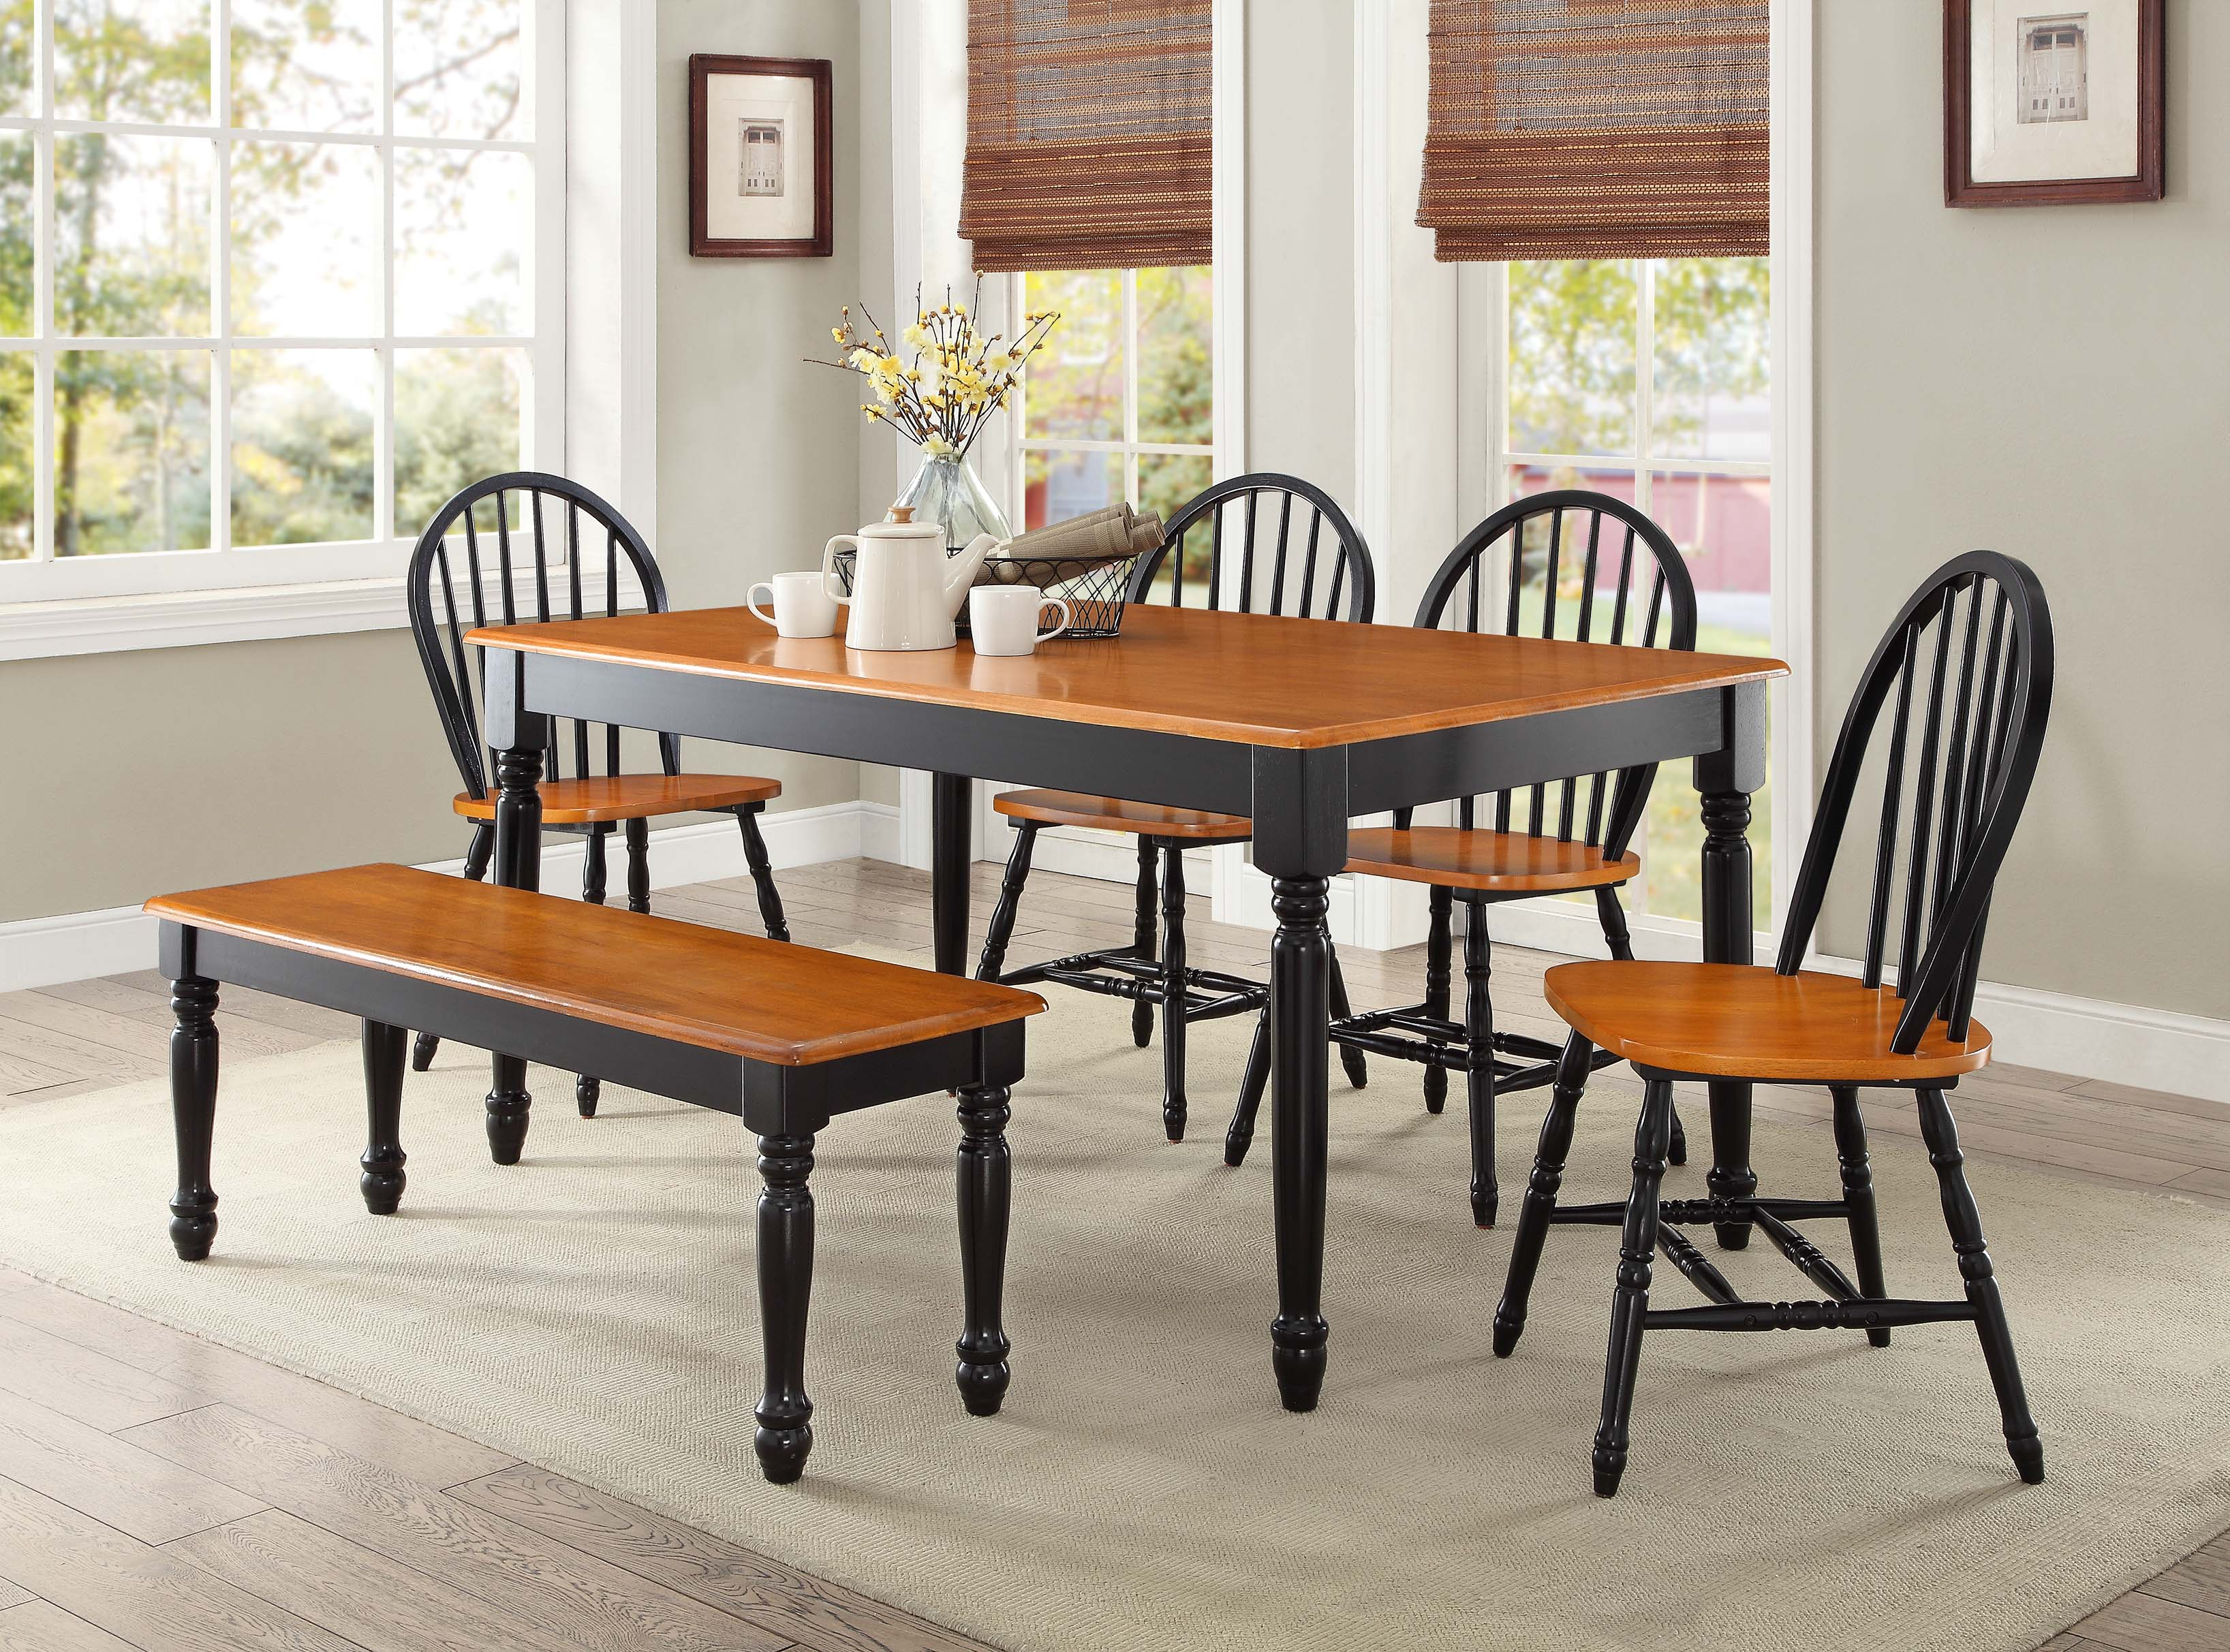 The dignified dining room table